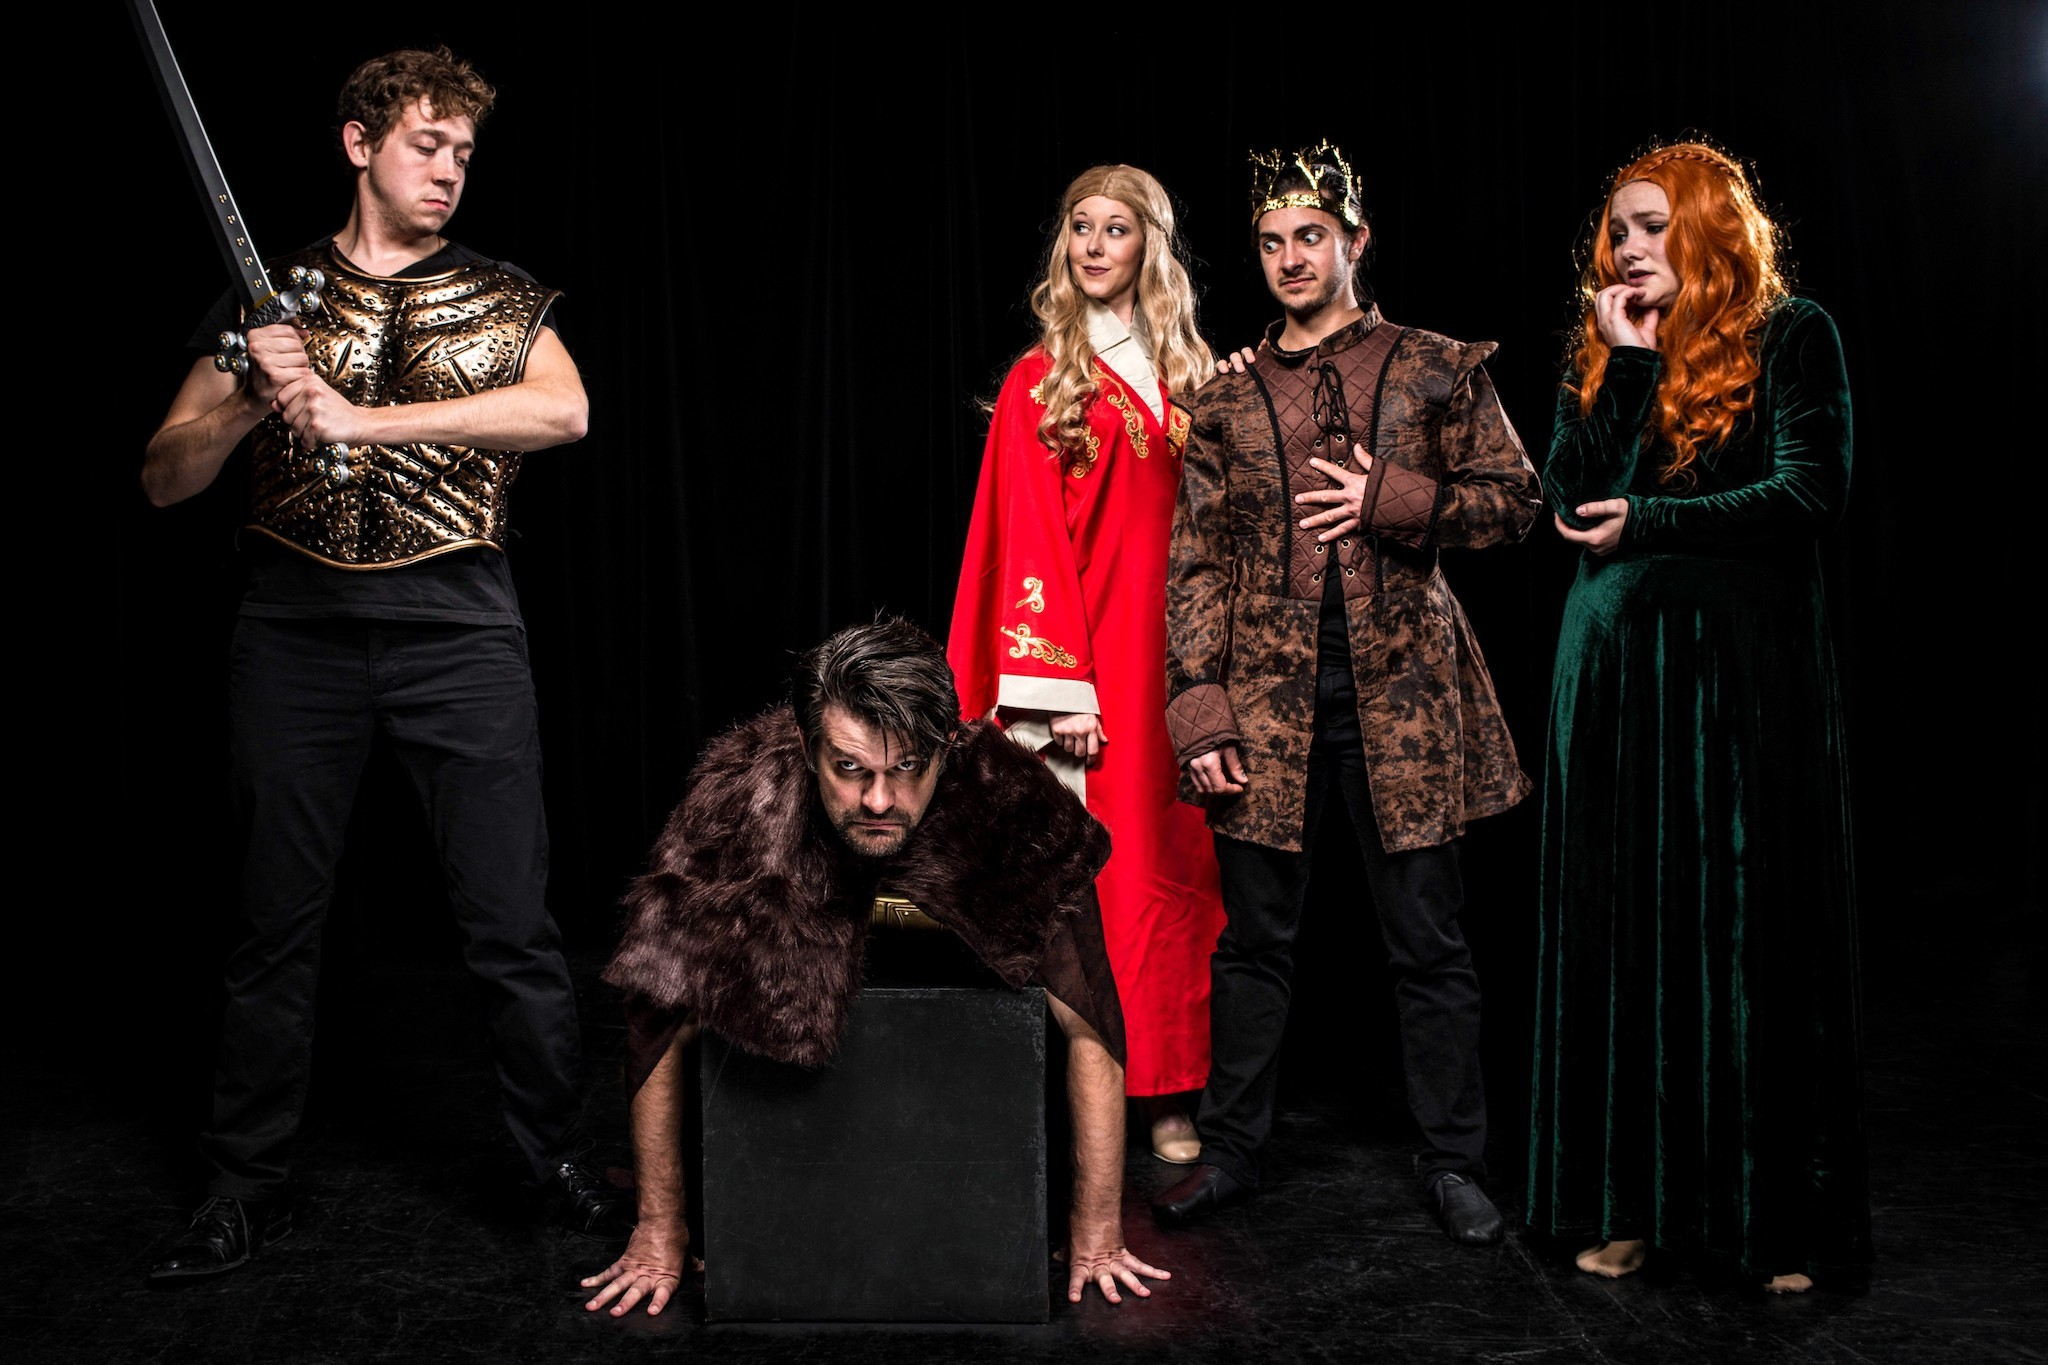 Game of Thrones Parody, Musical Thrones, comes to Philadelphia Theatre Company